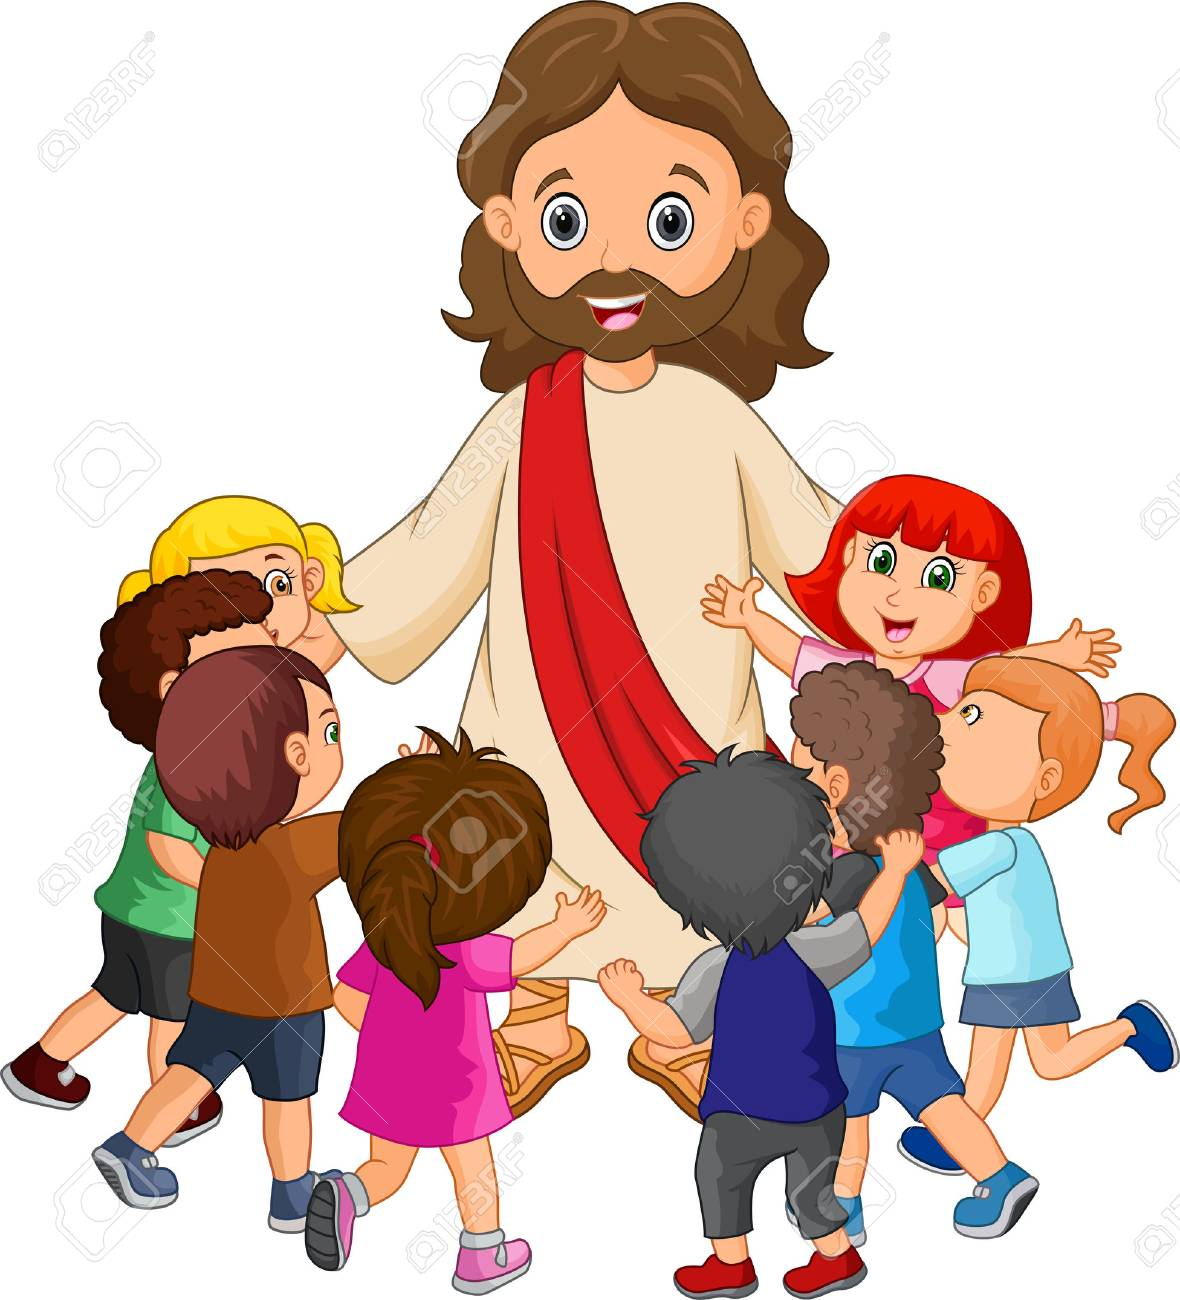 Cartoon Jesus Christ being surrounded by children.